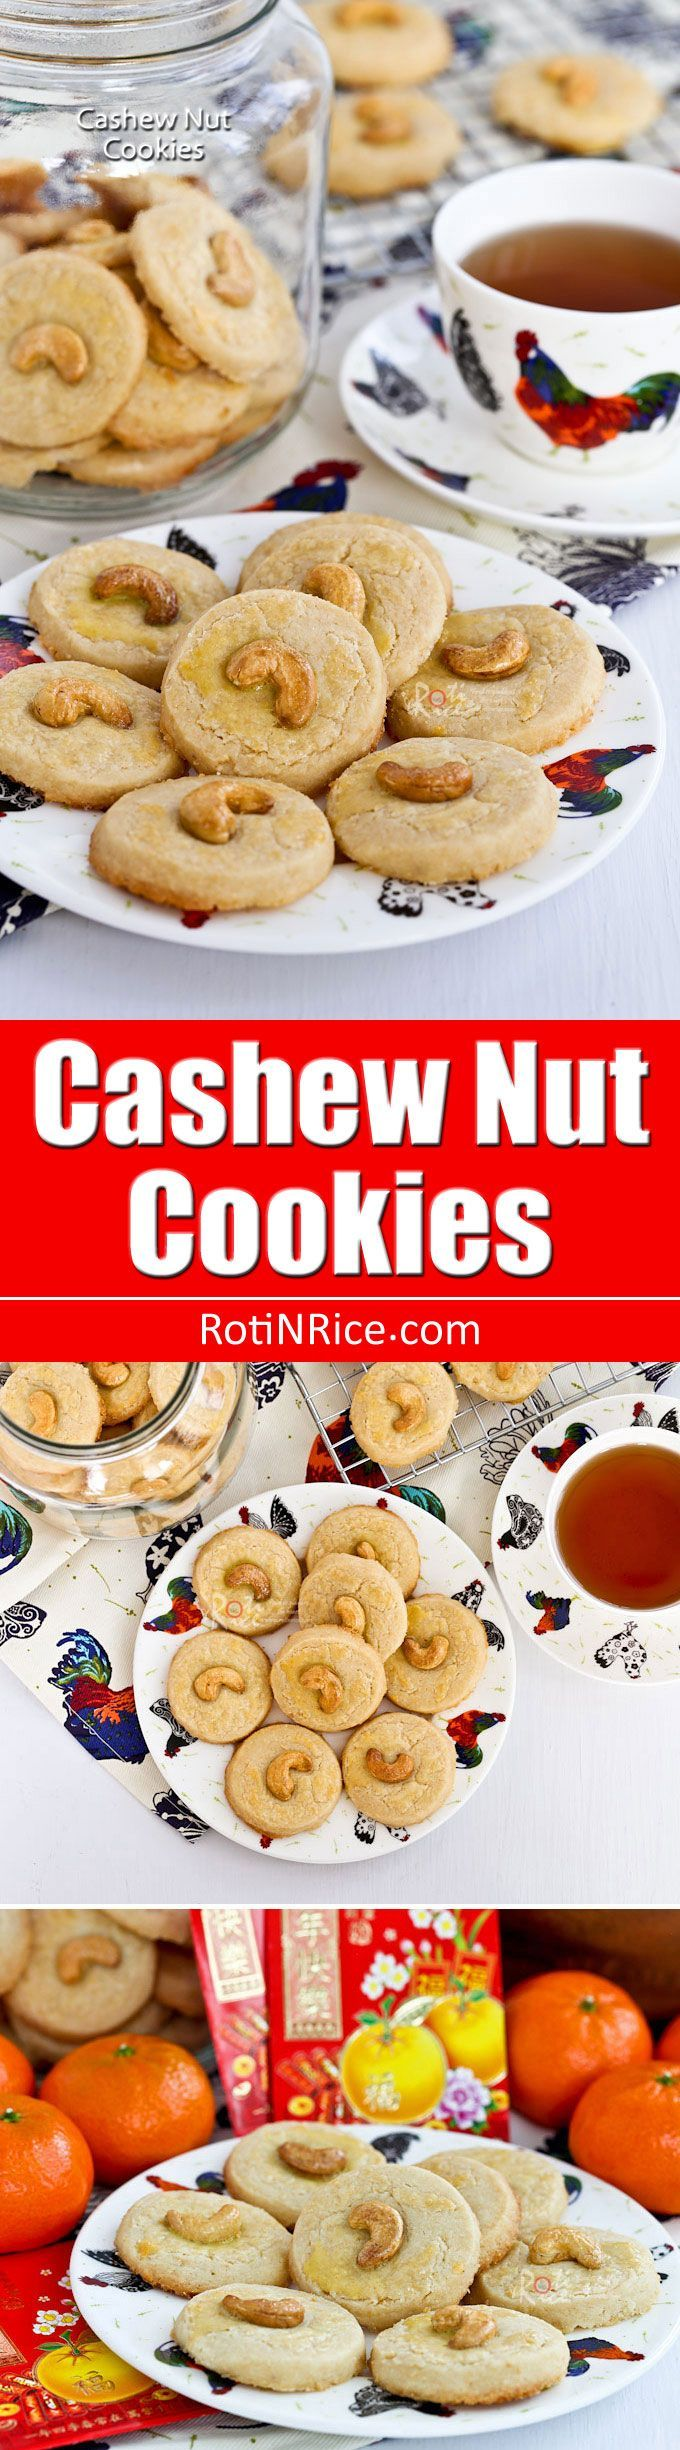 These buttery Cashew Nut Cookies have a crumbly sandy texture and a deliciously nutty flavor. Perfect for afternoon tea or the holidays. | http://RotiNRice.com